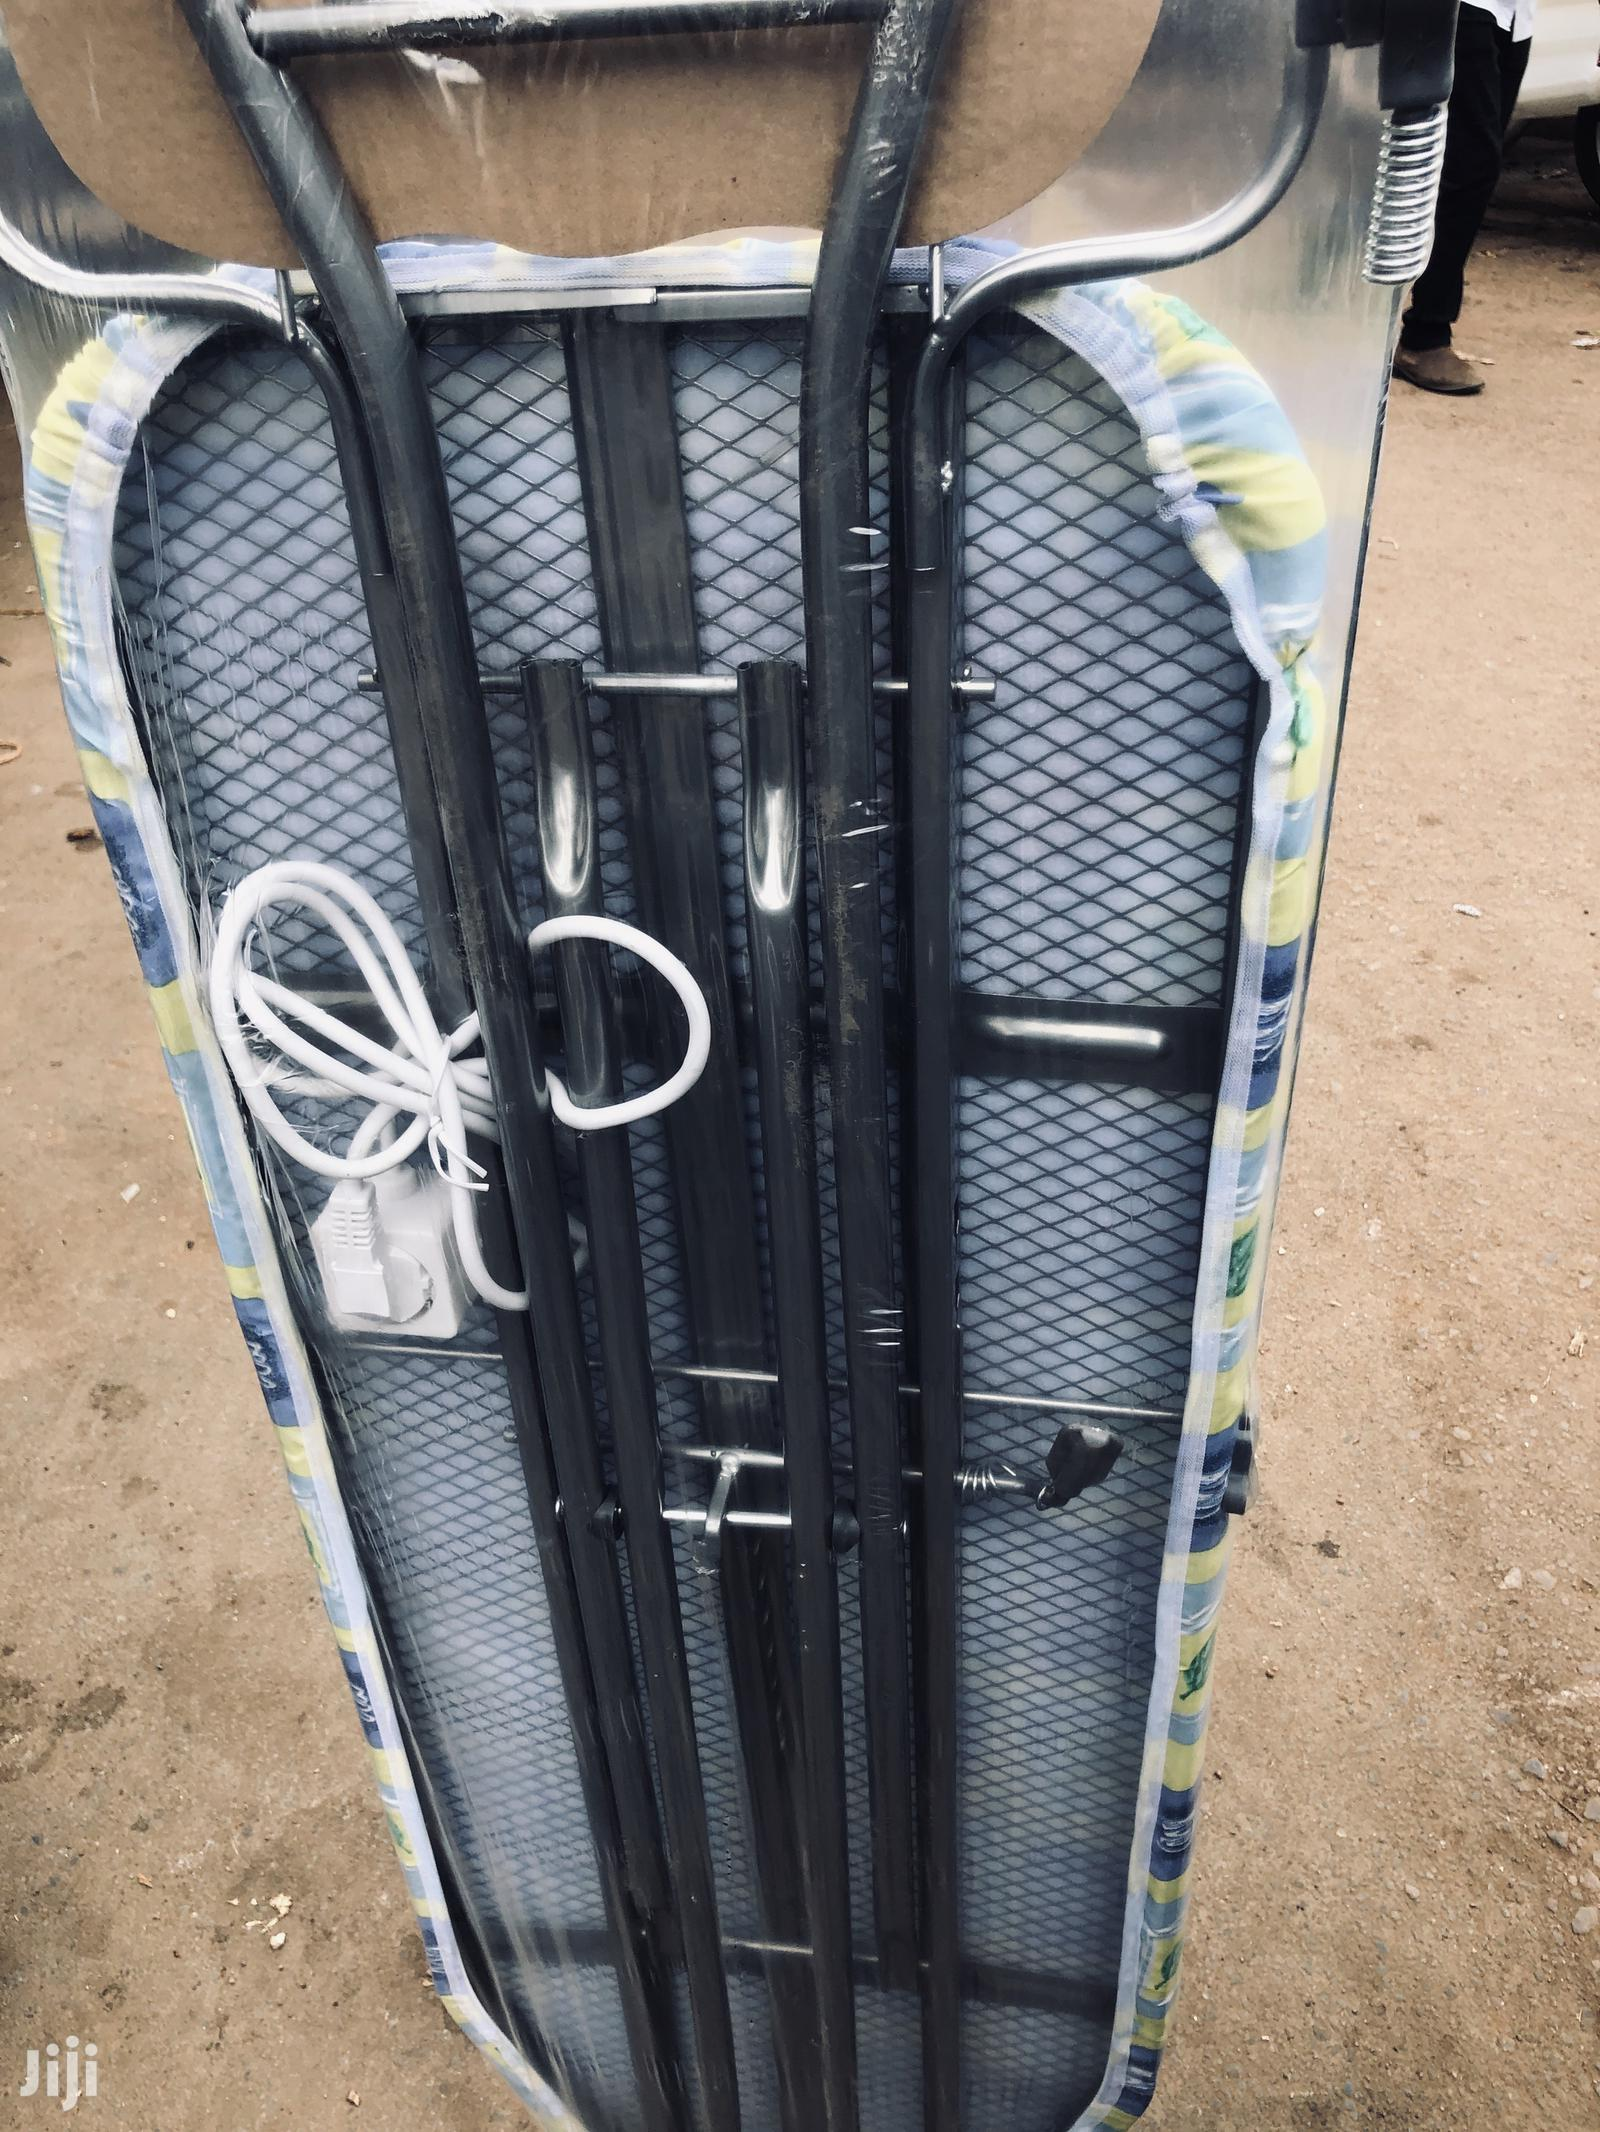 Extra Large Ironing Board | Home Accessories for sale in Kampala, Central Region, Uganda